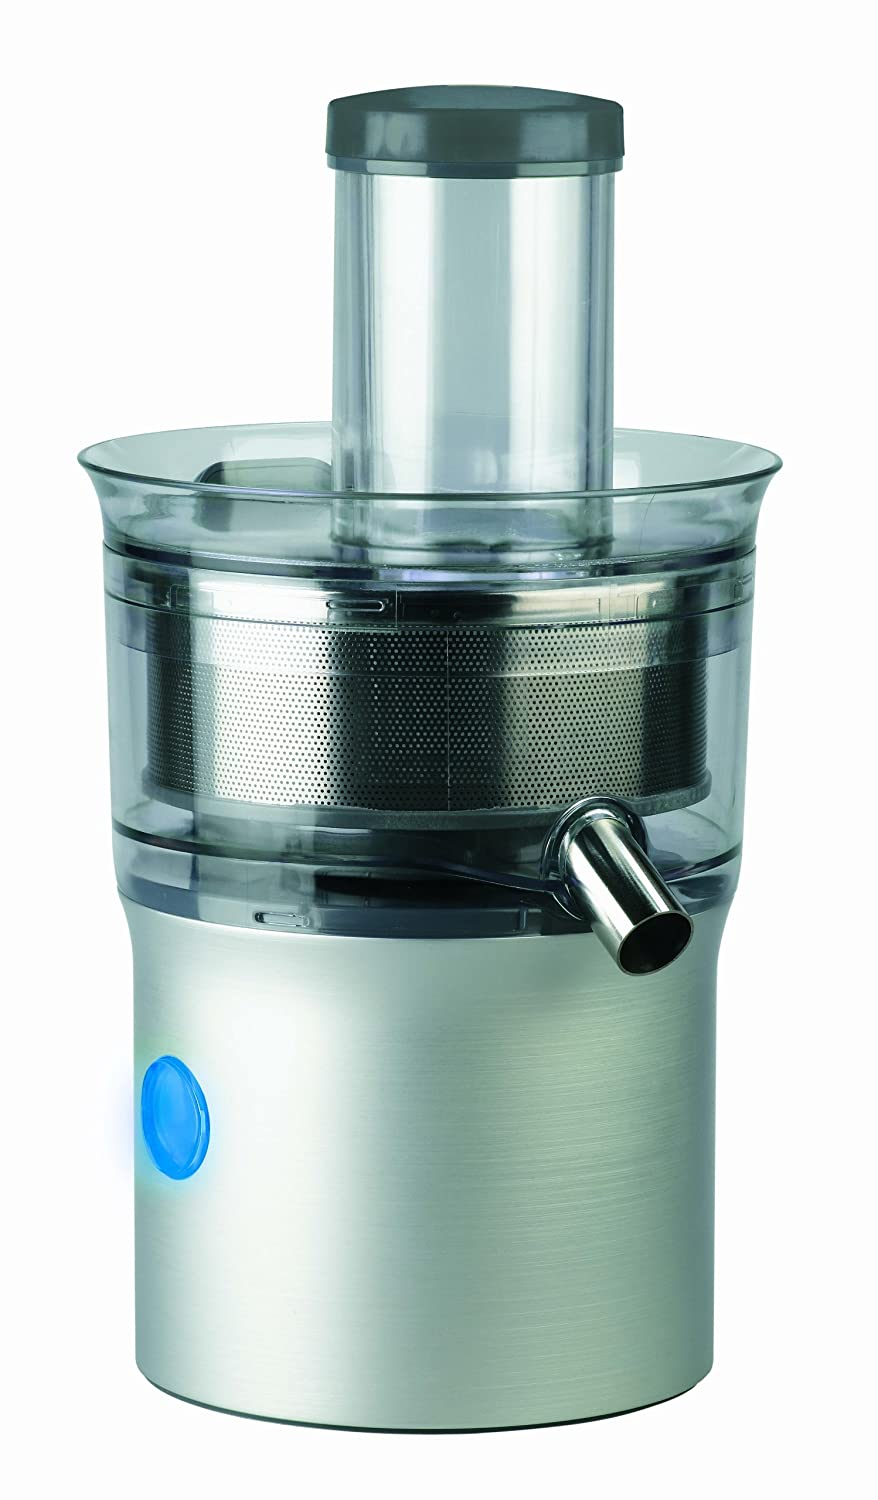 Amazon.com: DeLonghi DJE950 Die-cast Juice Extractor: Electric Centrifugal  Juicers: Kitchen & Dining